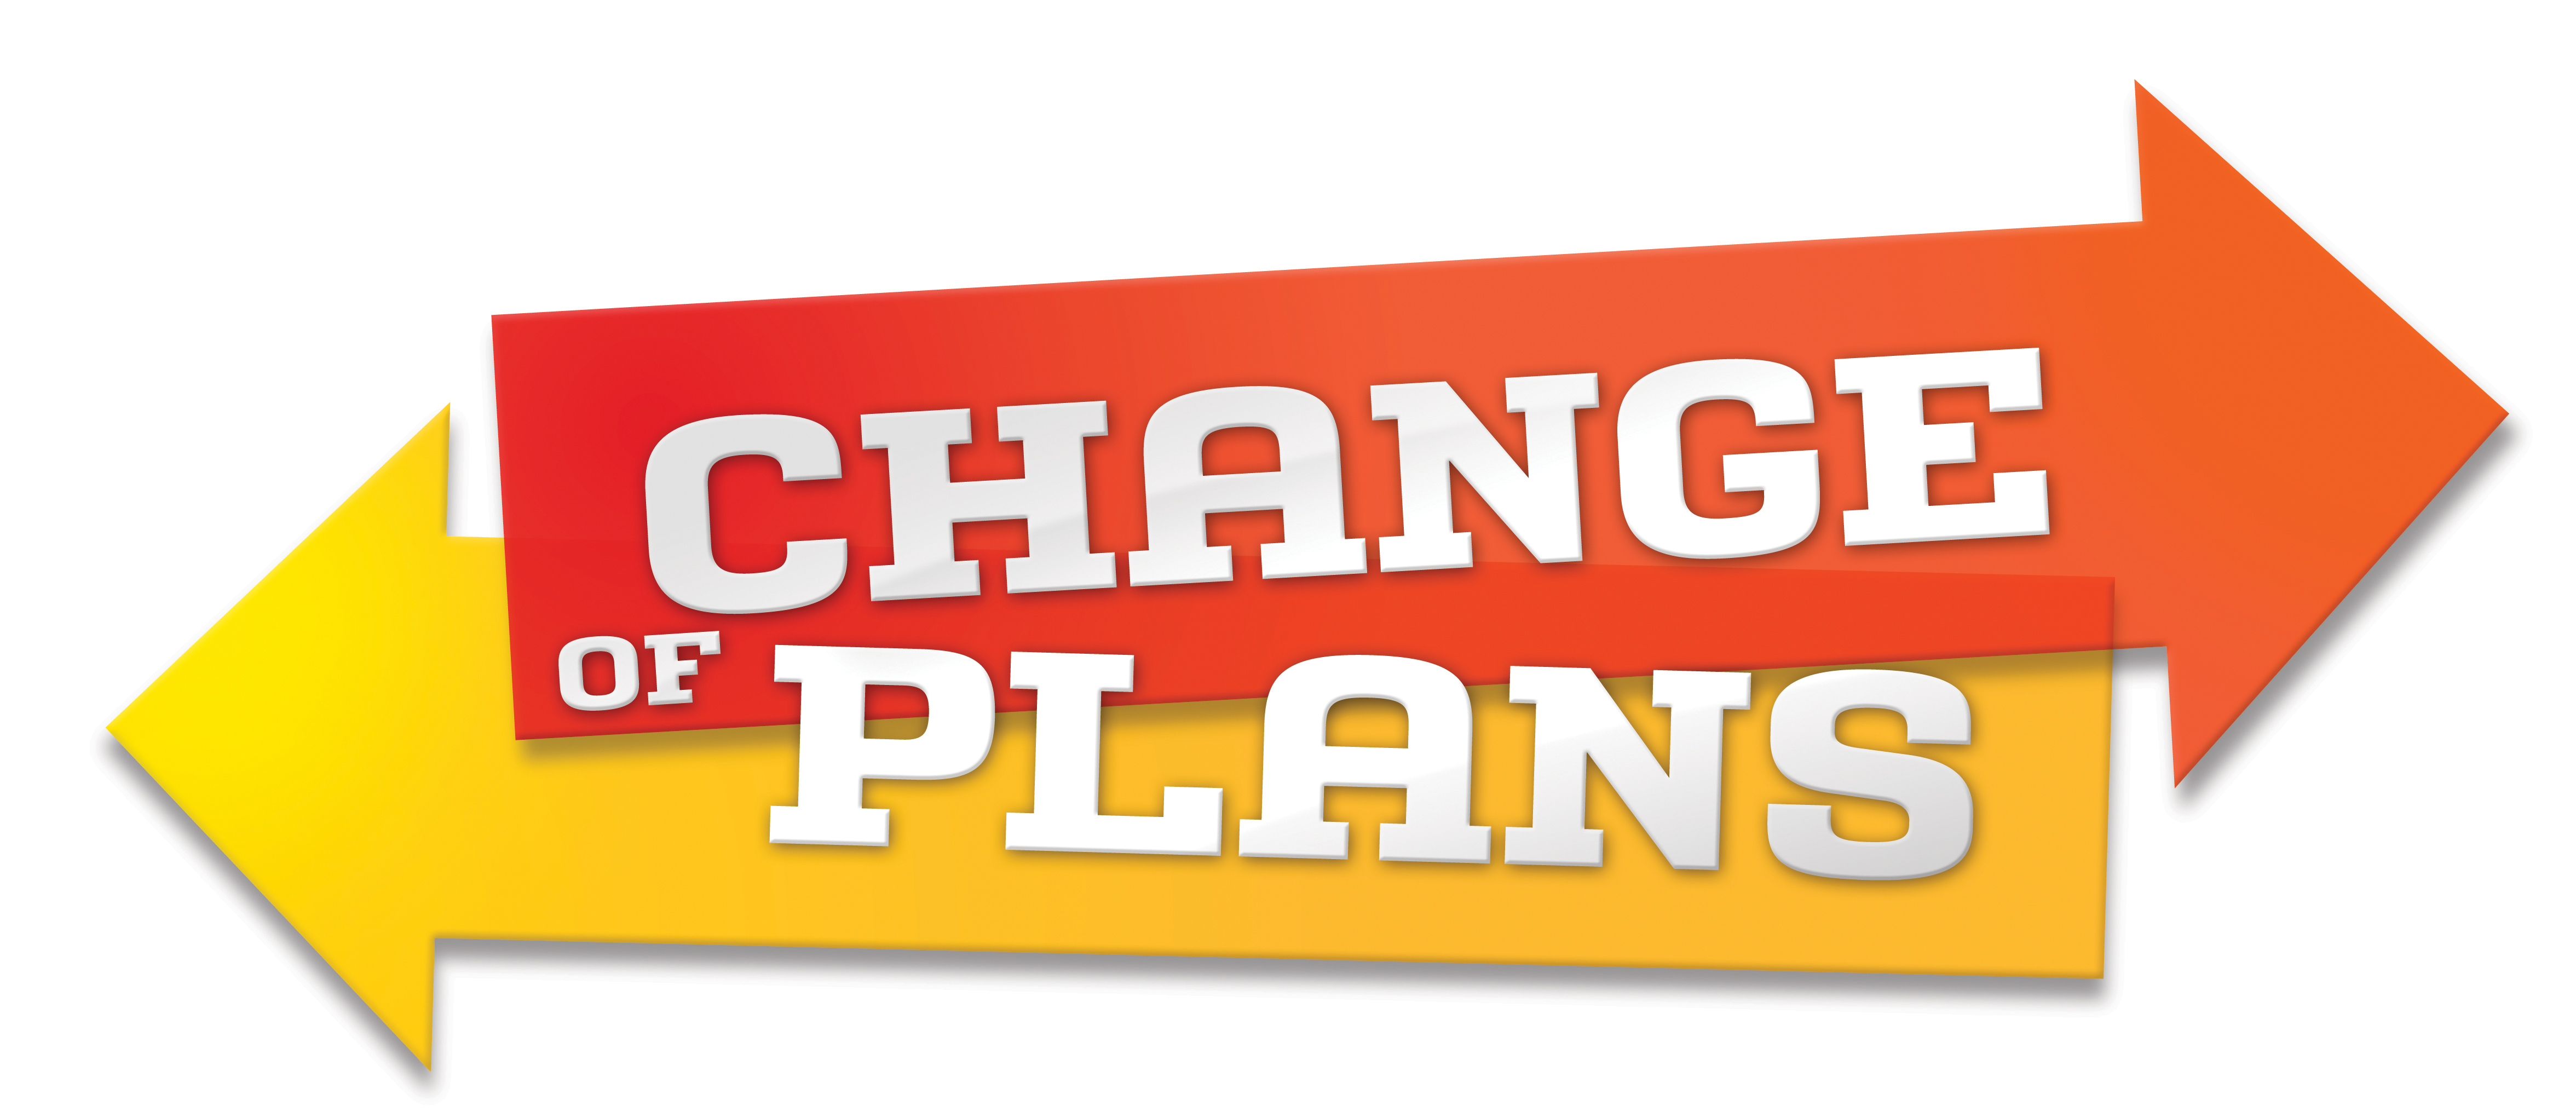 Change of plans clipart